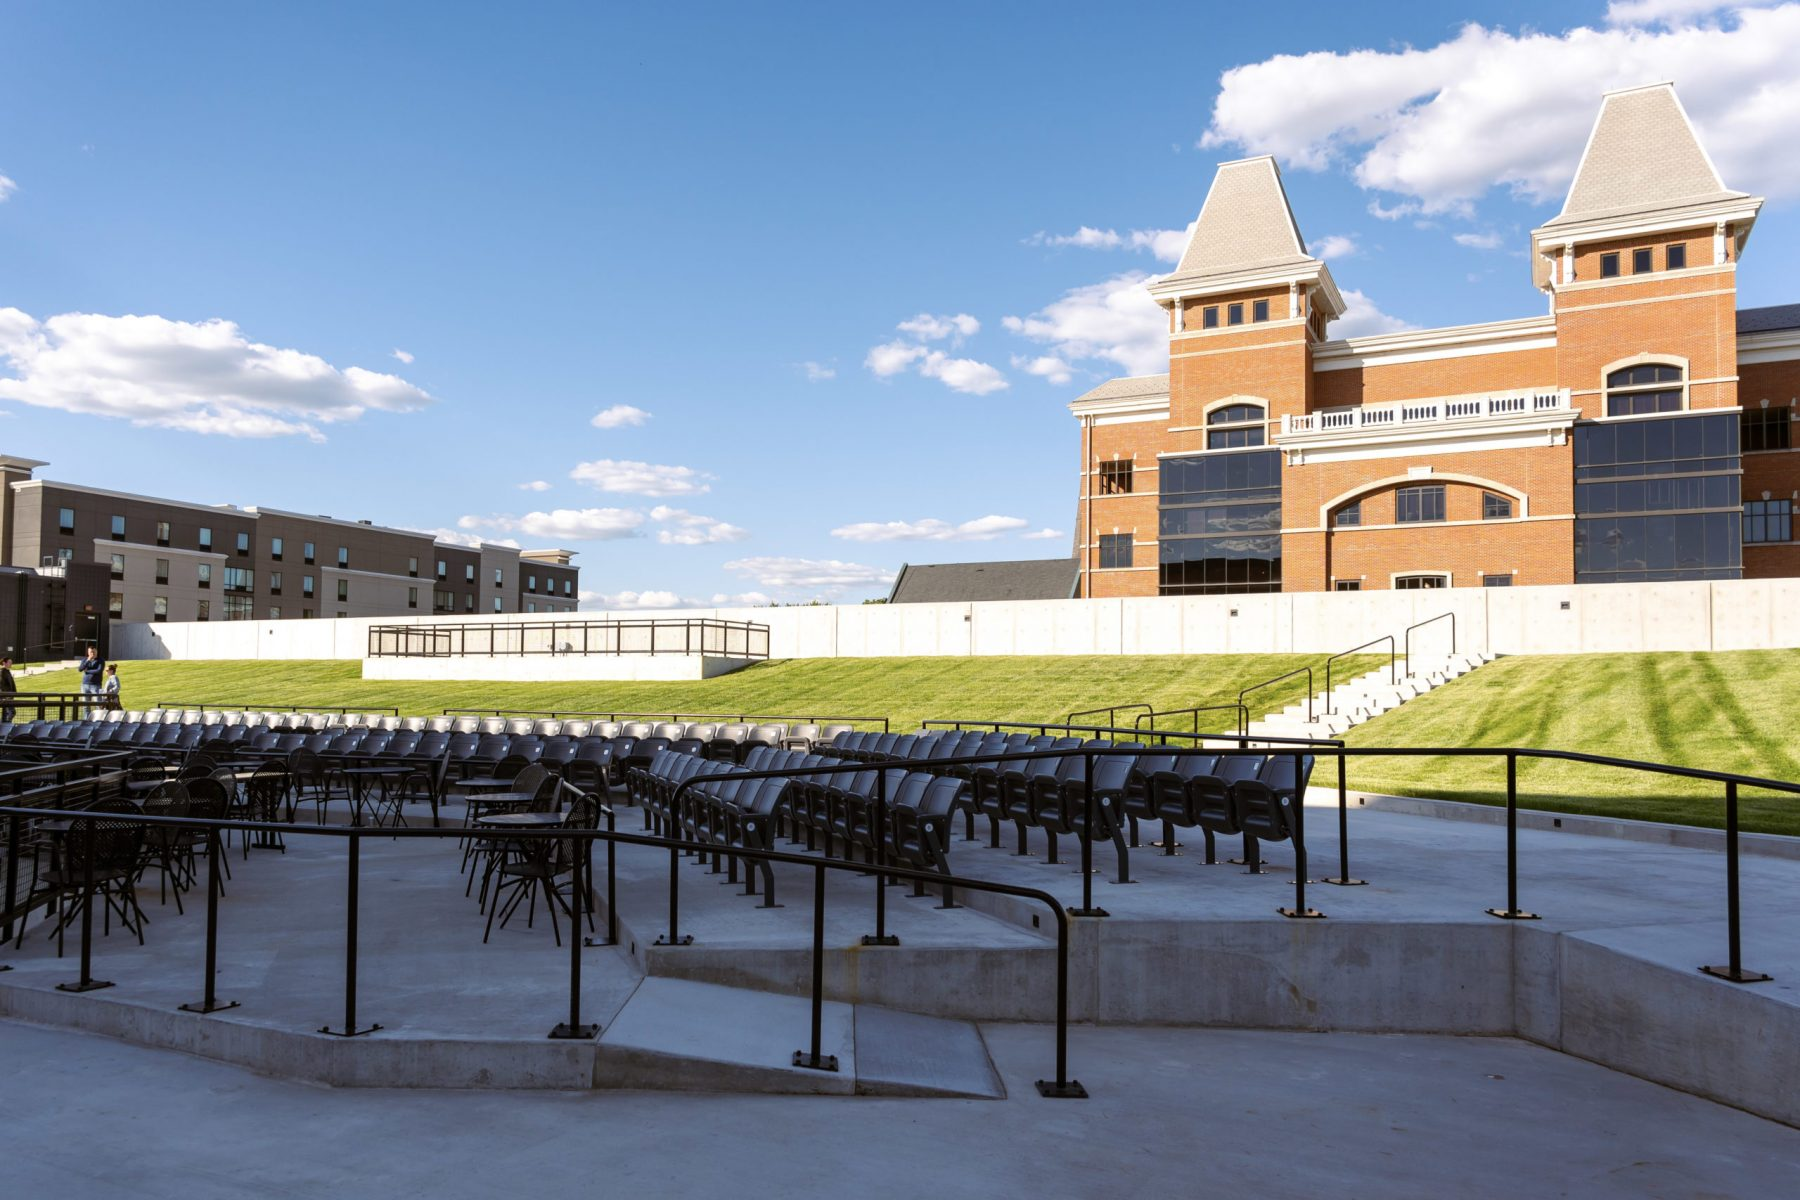 Both permanent and temporary seating are set up in the ampitheater. The Campbell County Courthouse looms large behind the venue. Photo by Phil Armstrong.